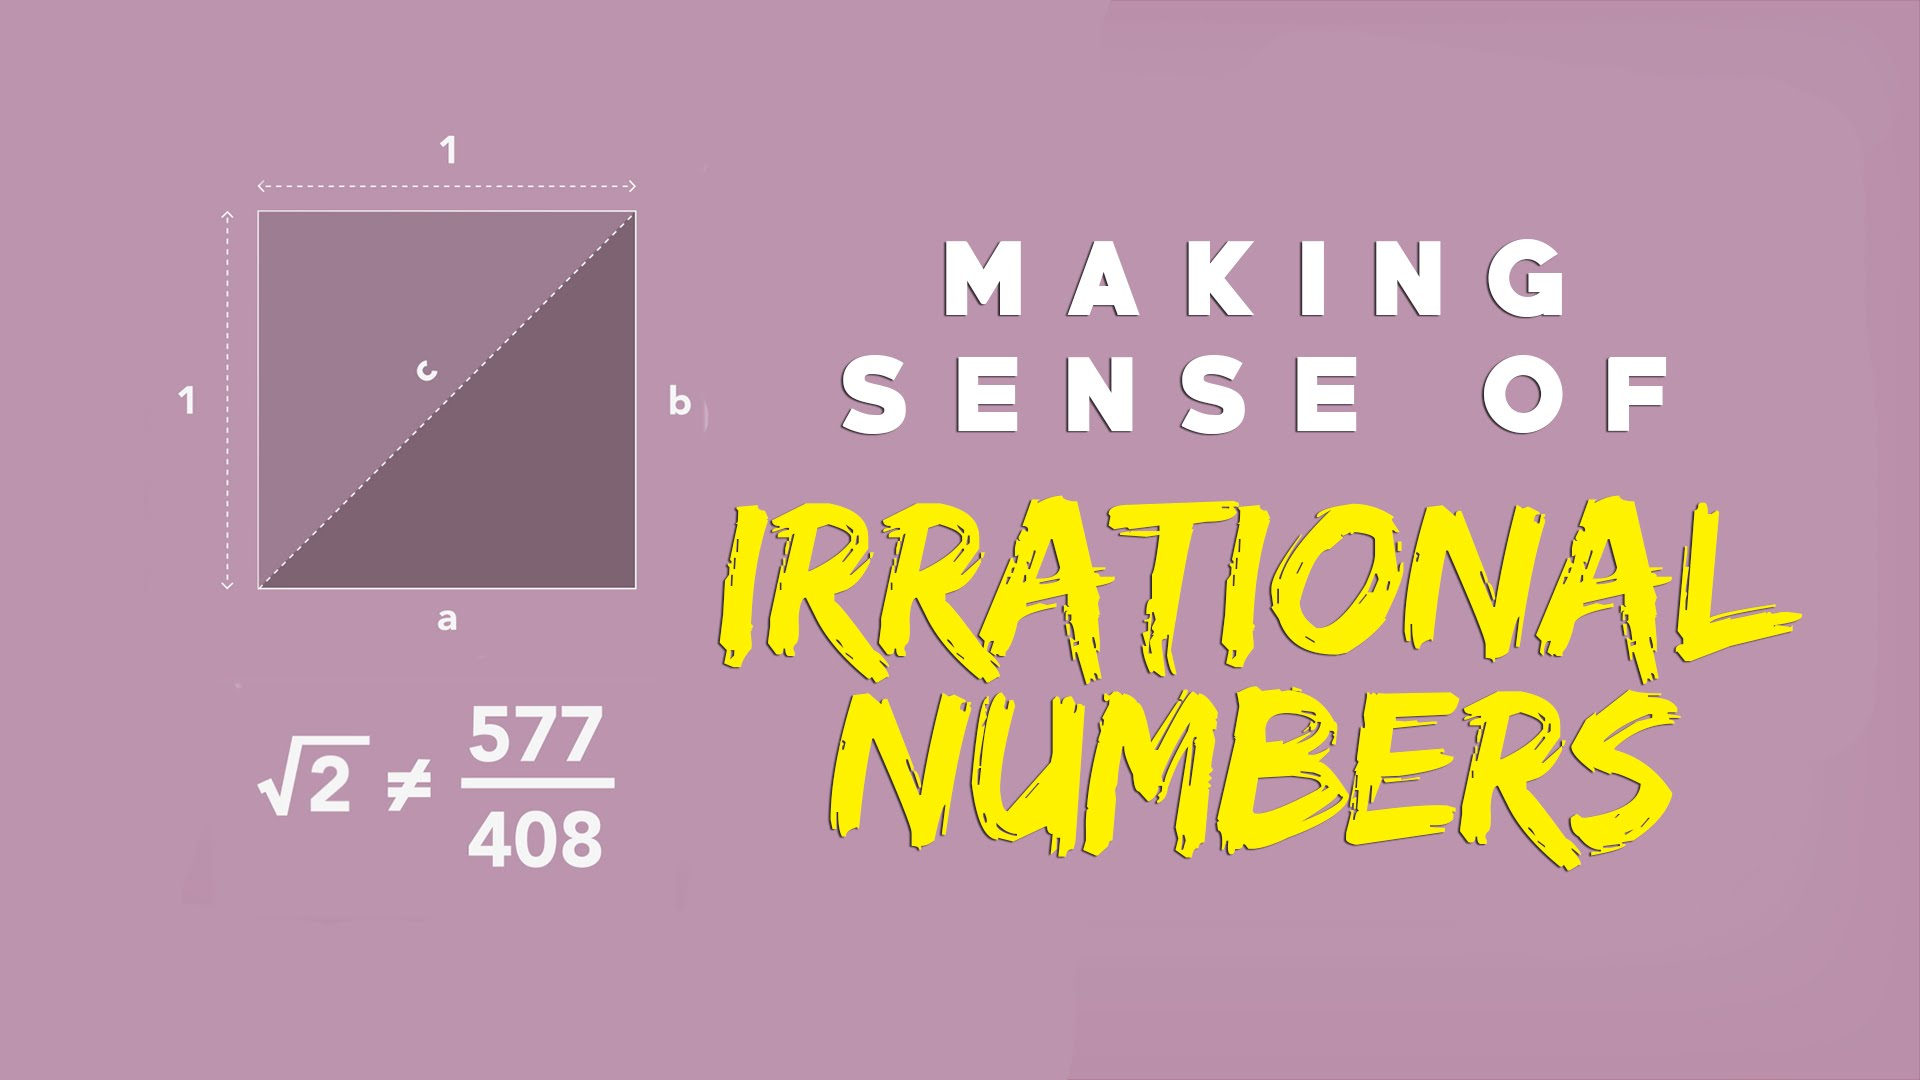 Making sense of irrational numbers